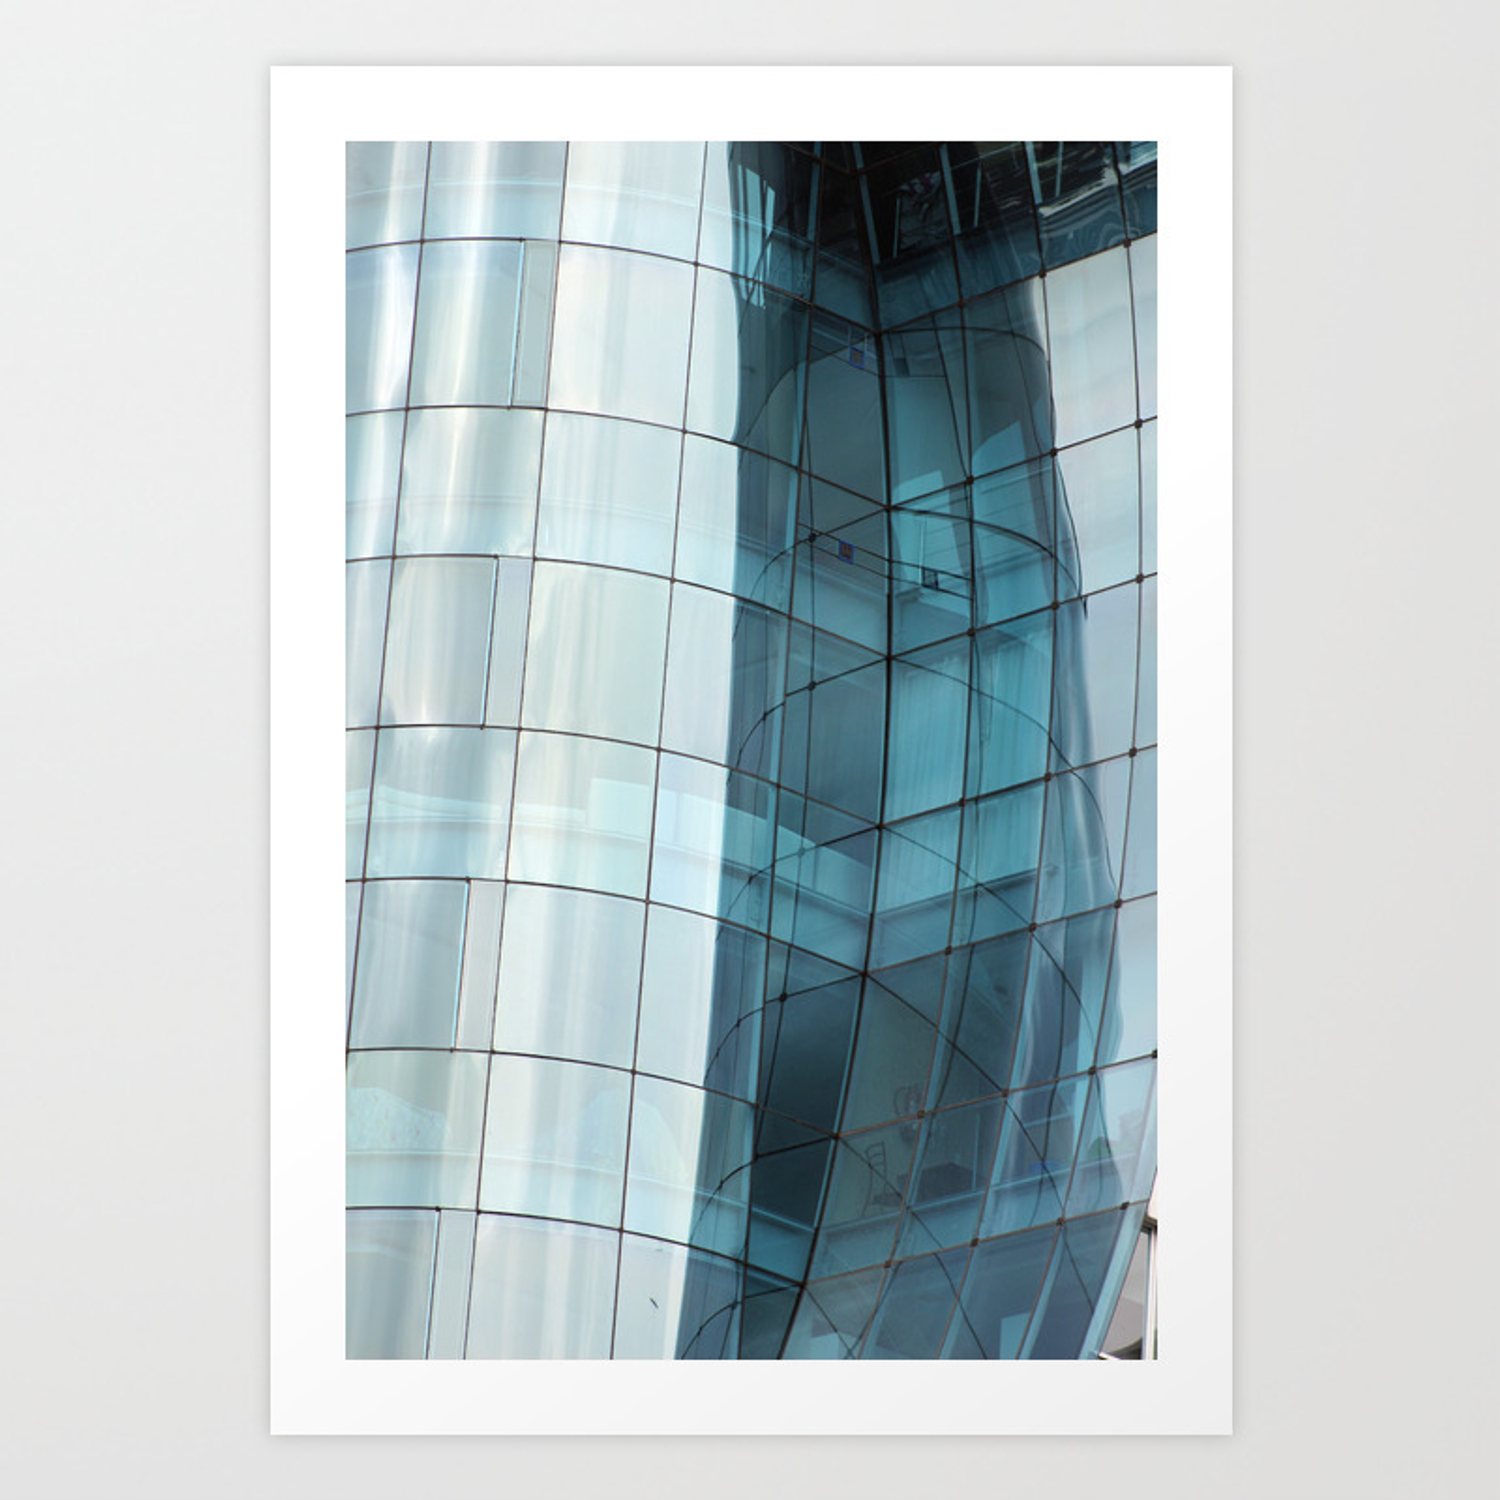 Reflections in a curved glass building art print